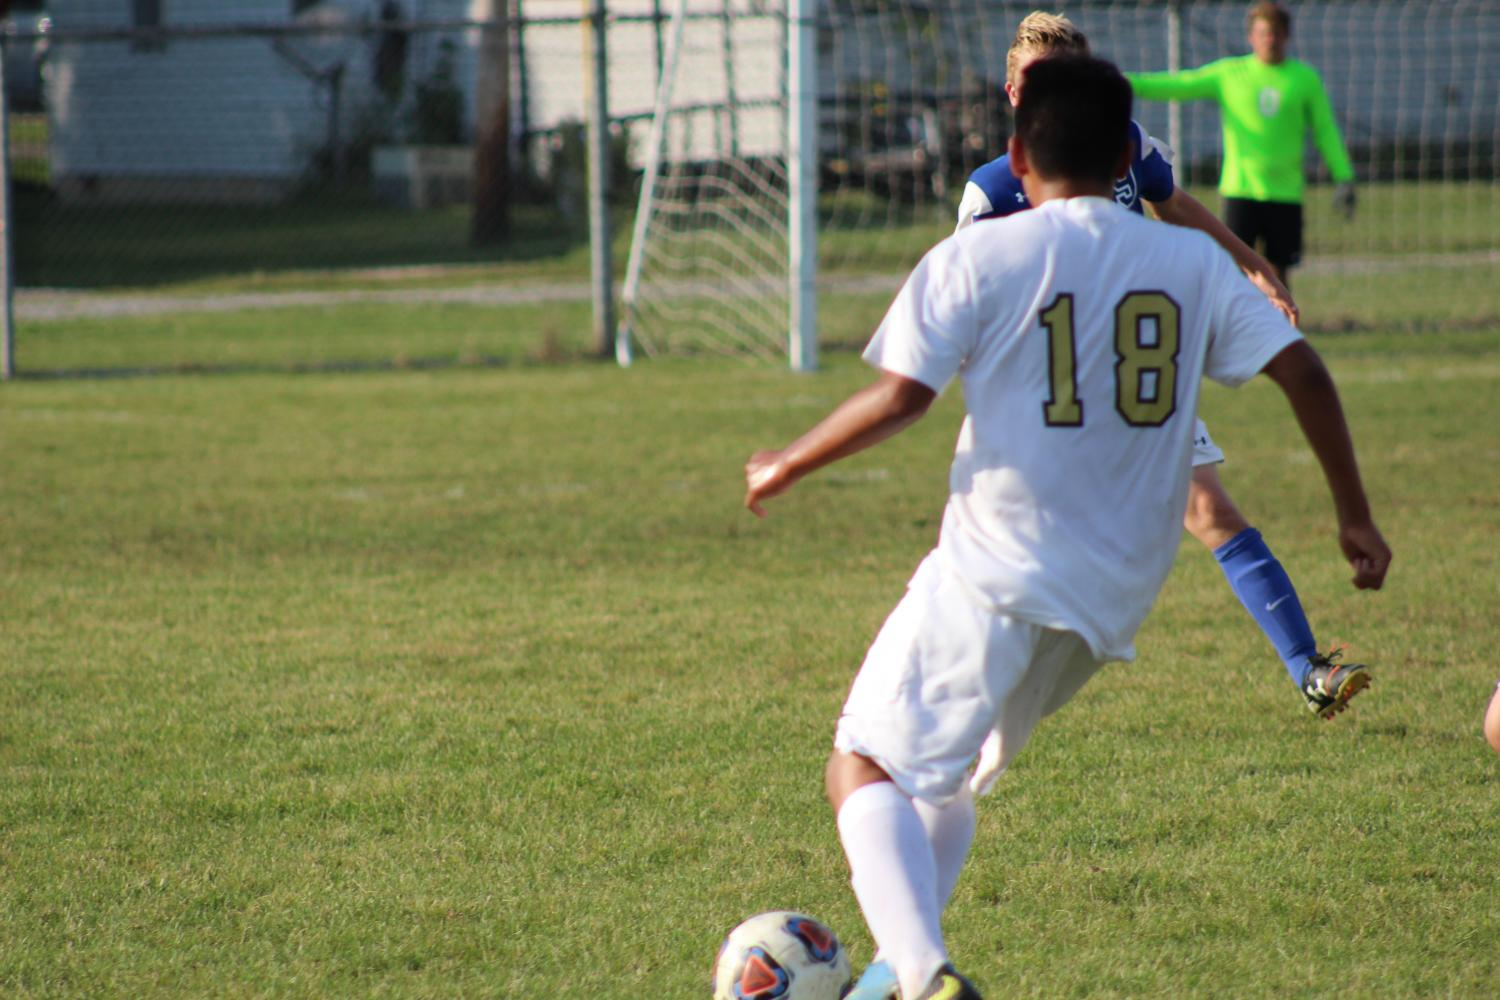 Freshman Ricky Martinez takes on a Carroll defender. Photo taken by Michael O'Neil.